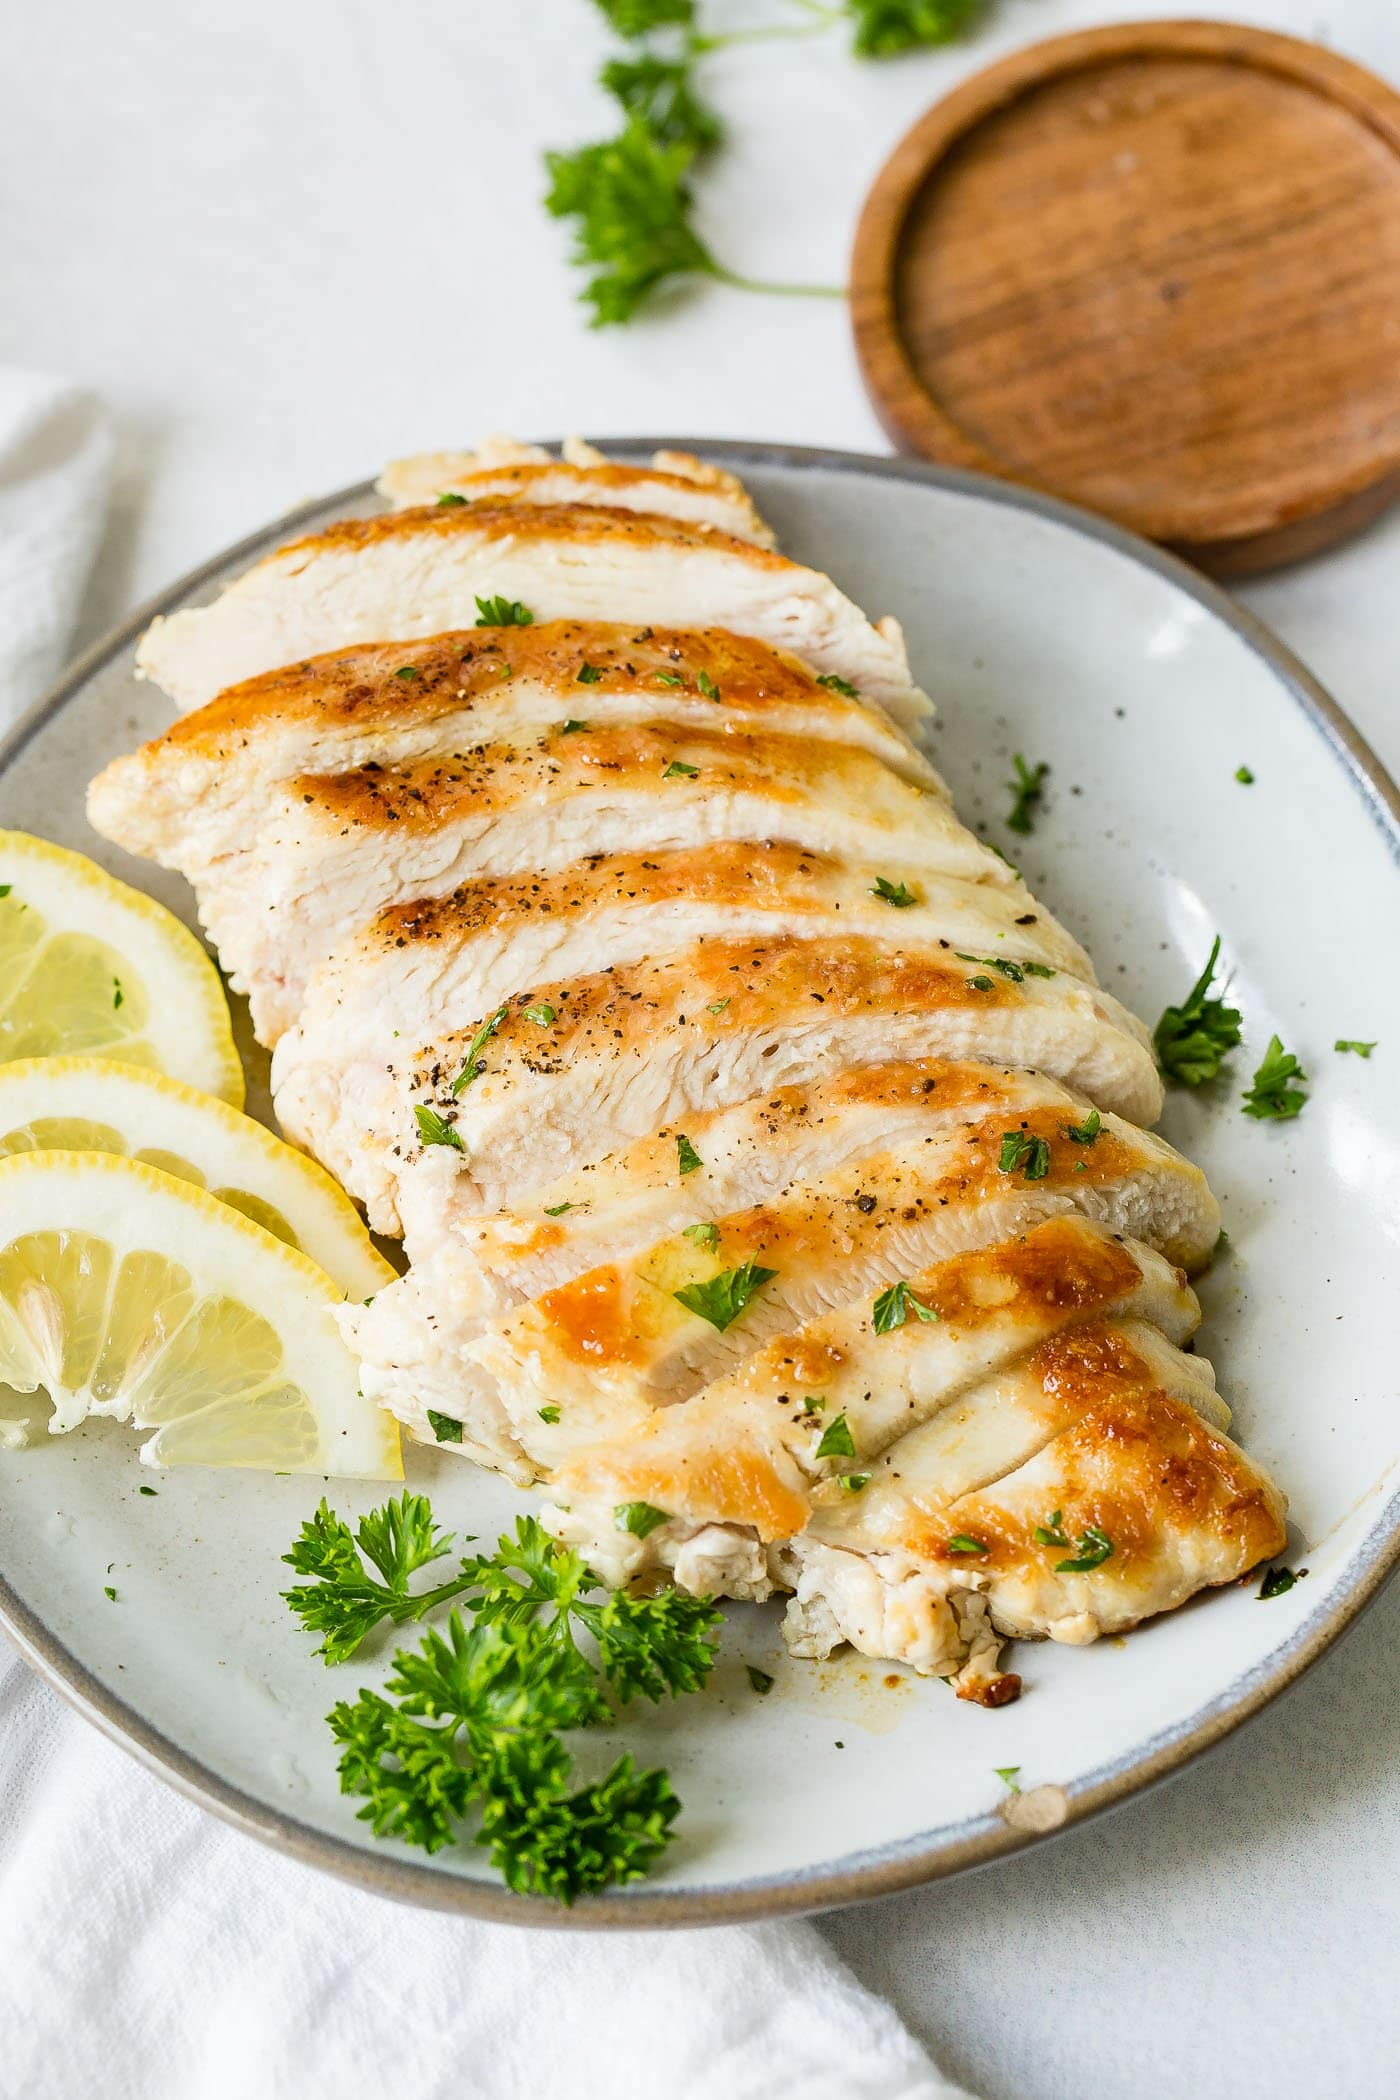 A white plate with a perfectly cooked chicken breast that has been sliced.  There are slices of lemon and a little fresh parsley next to the chicken.